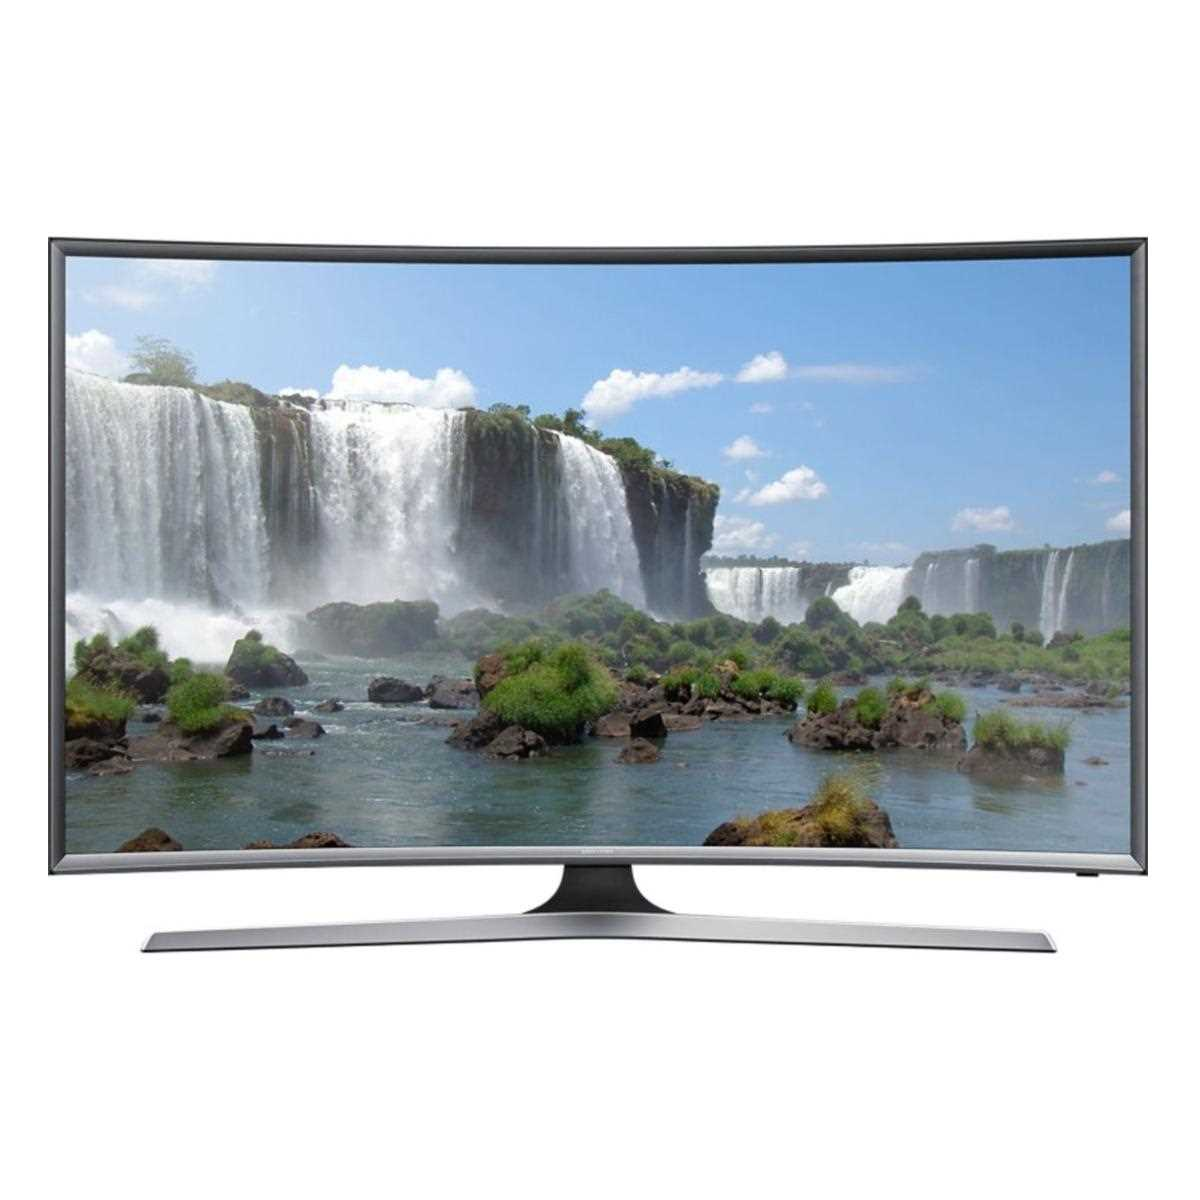 samsung tv 32 inch smart. Samsung 32J6300 32 Inch Full HD Smart Curved LED Television Price {25 Nov 2017} | Reviews And Specifications Tv